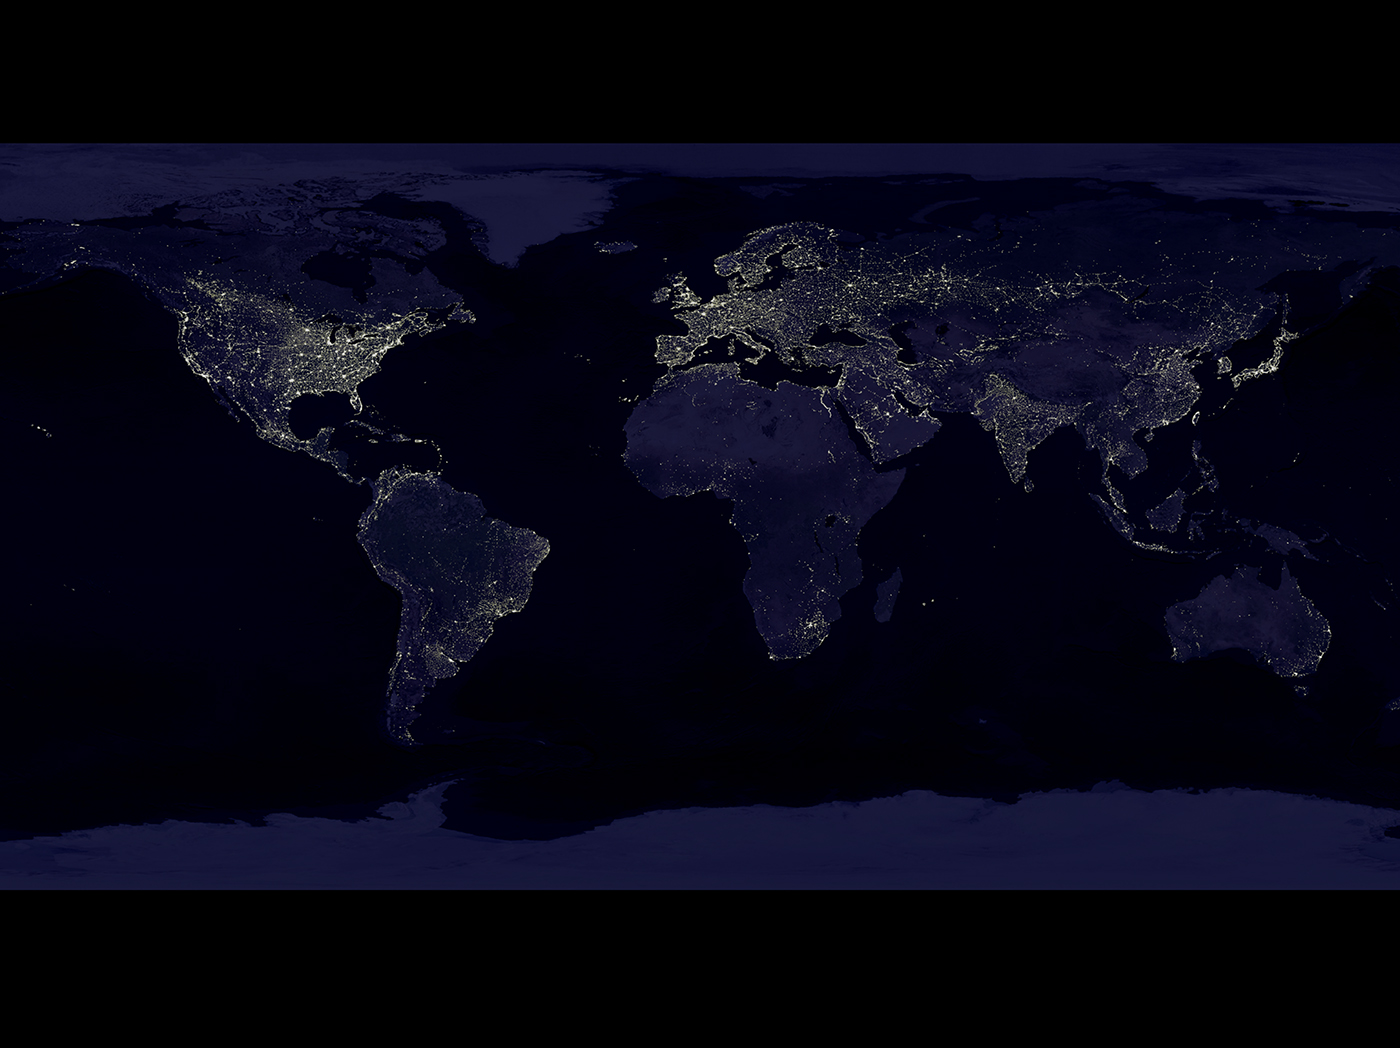 The Nighttime Lights of the World